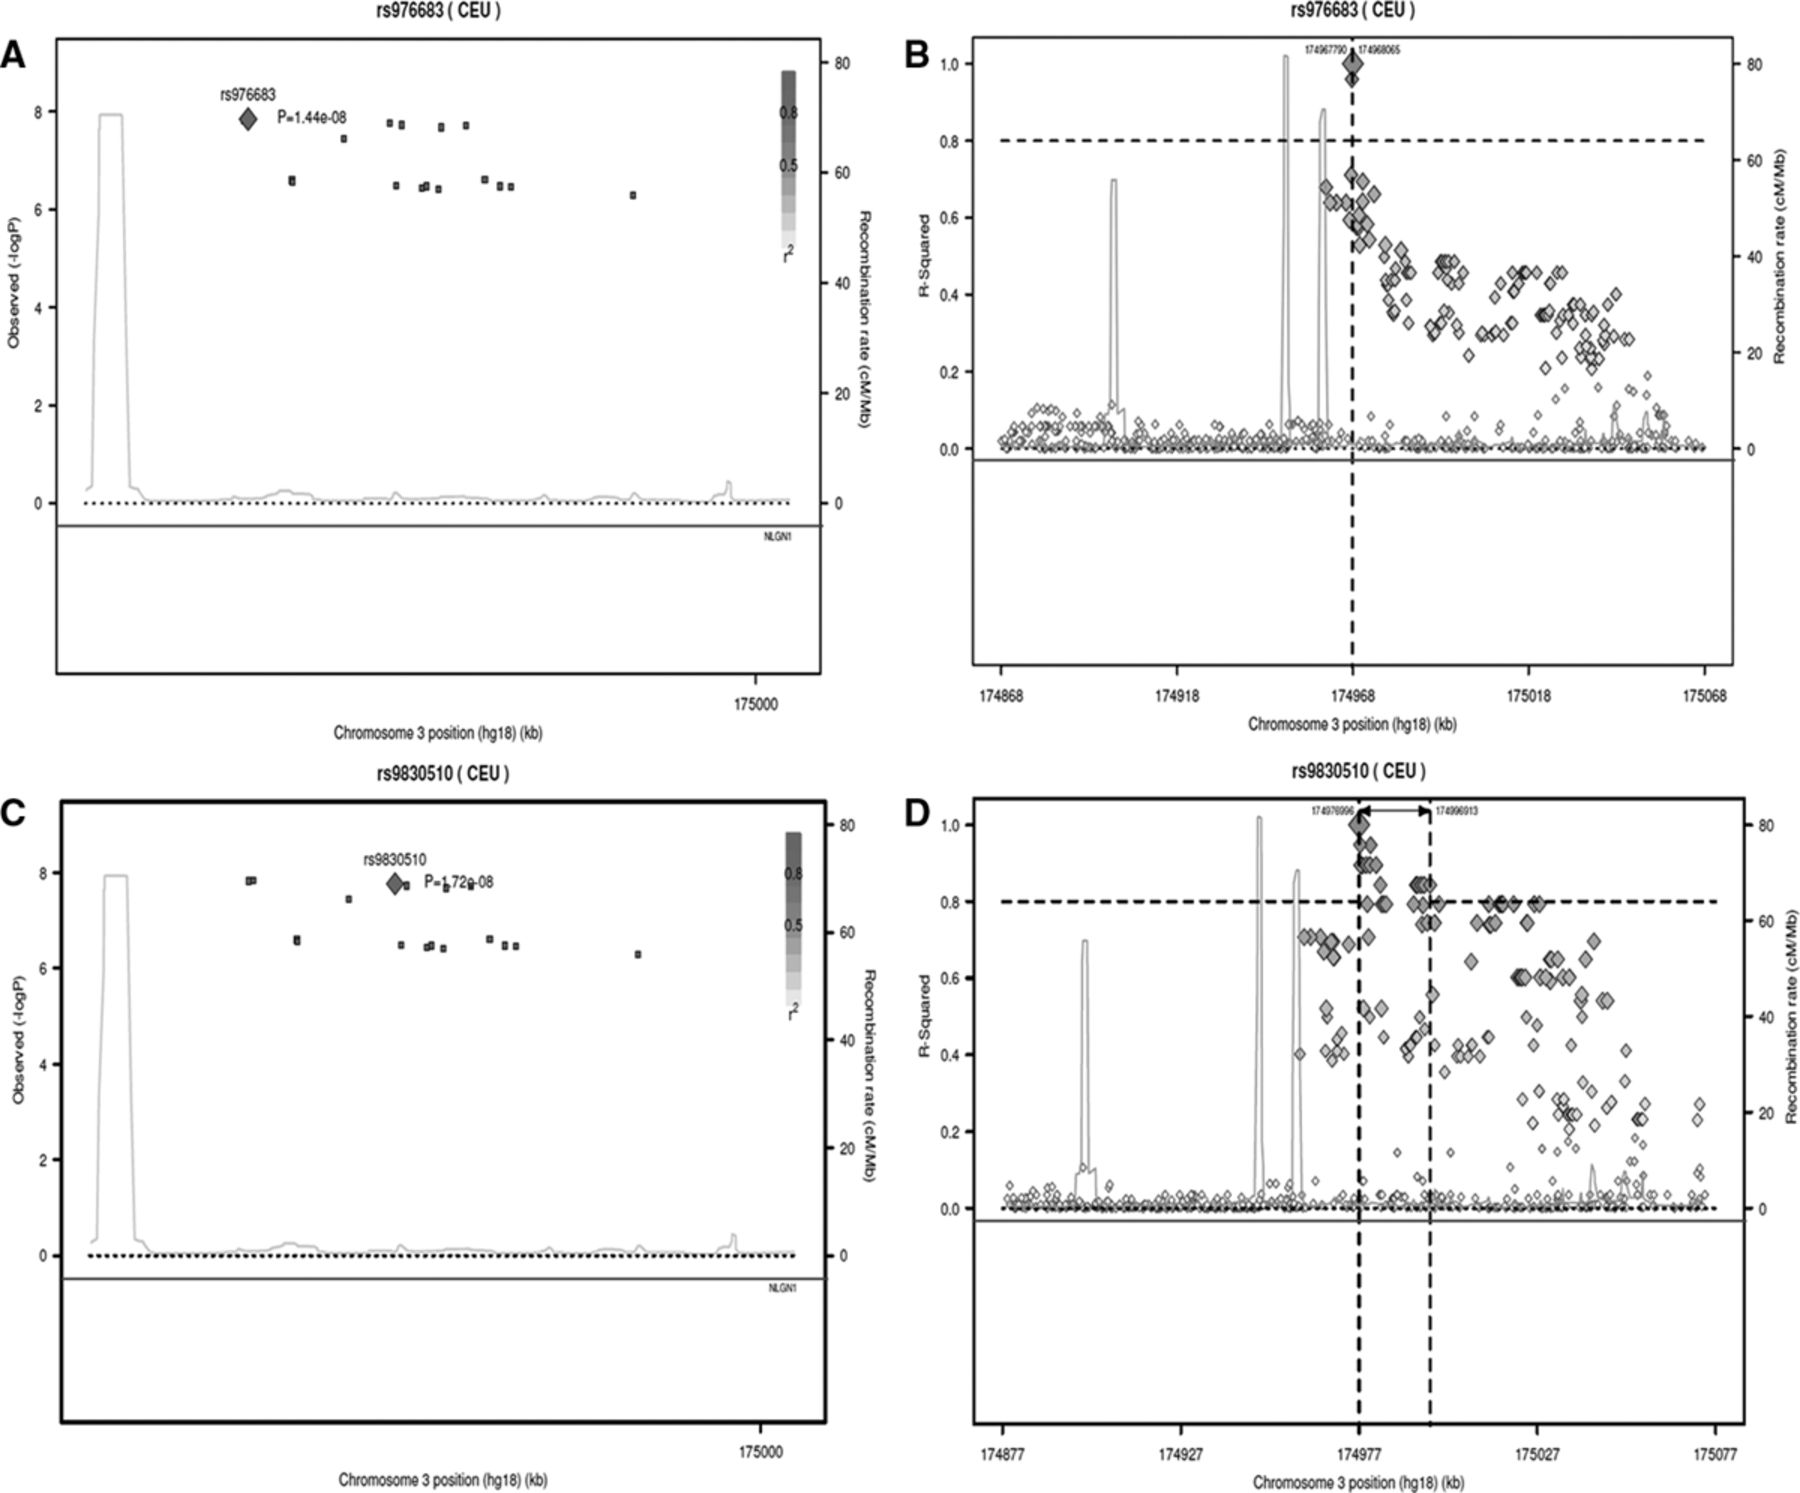 Genome-Wide Analysis of Blood Pressure Variability and